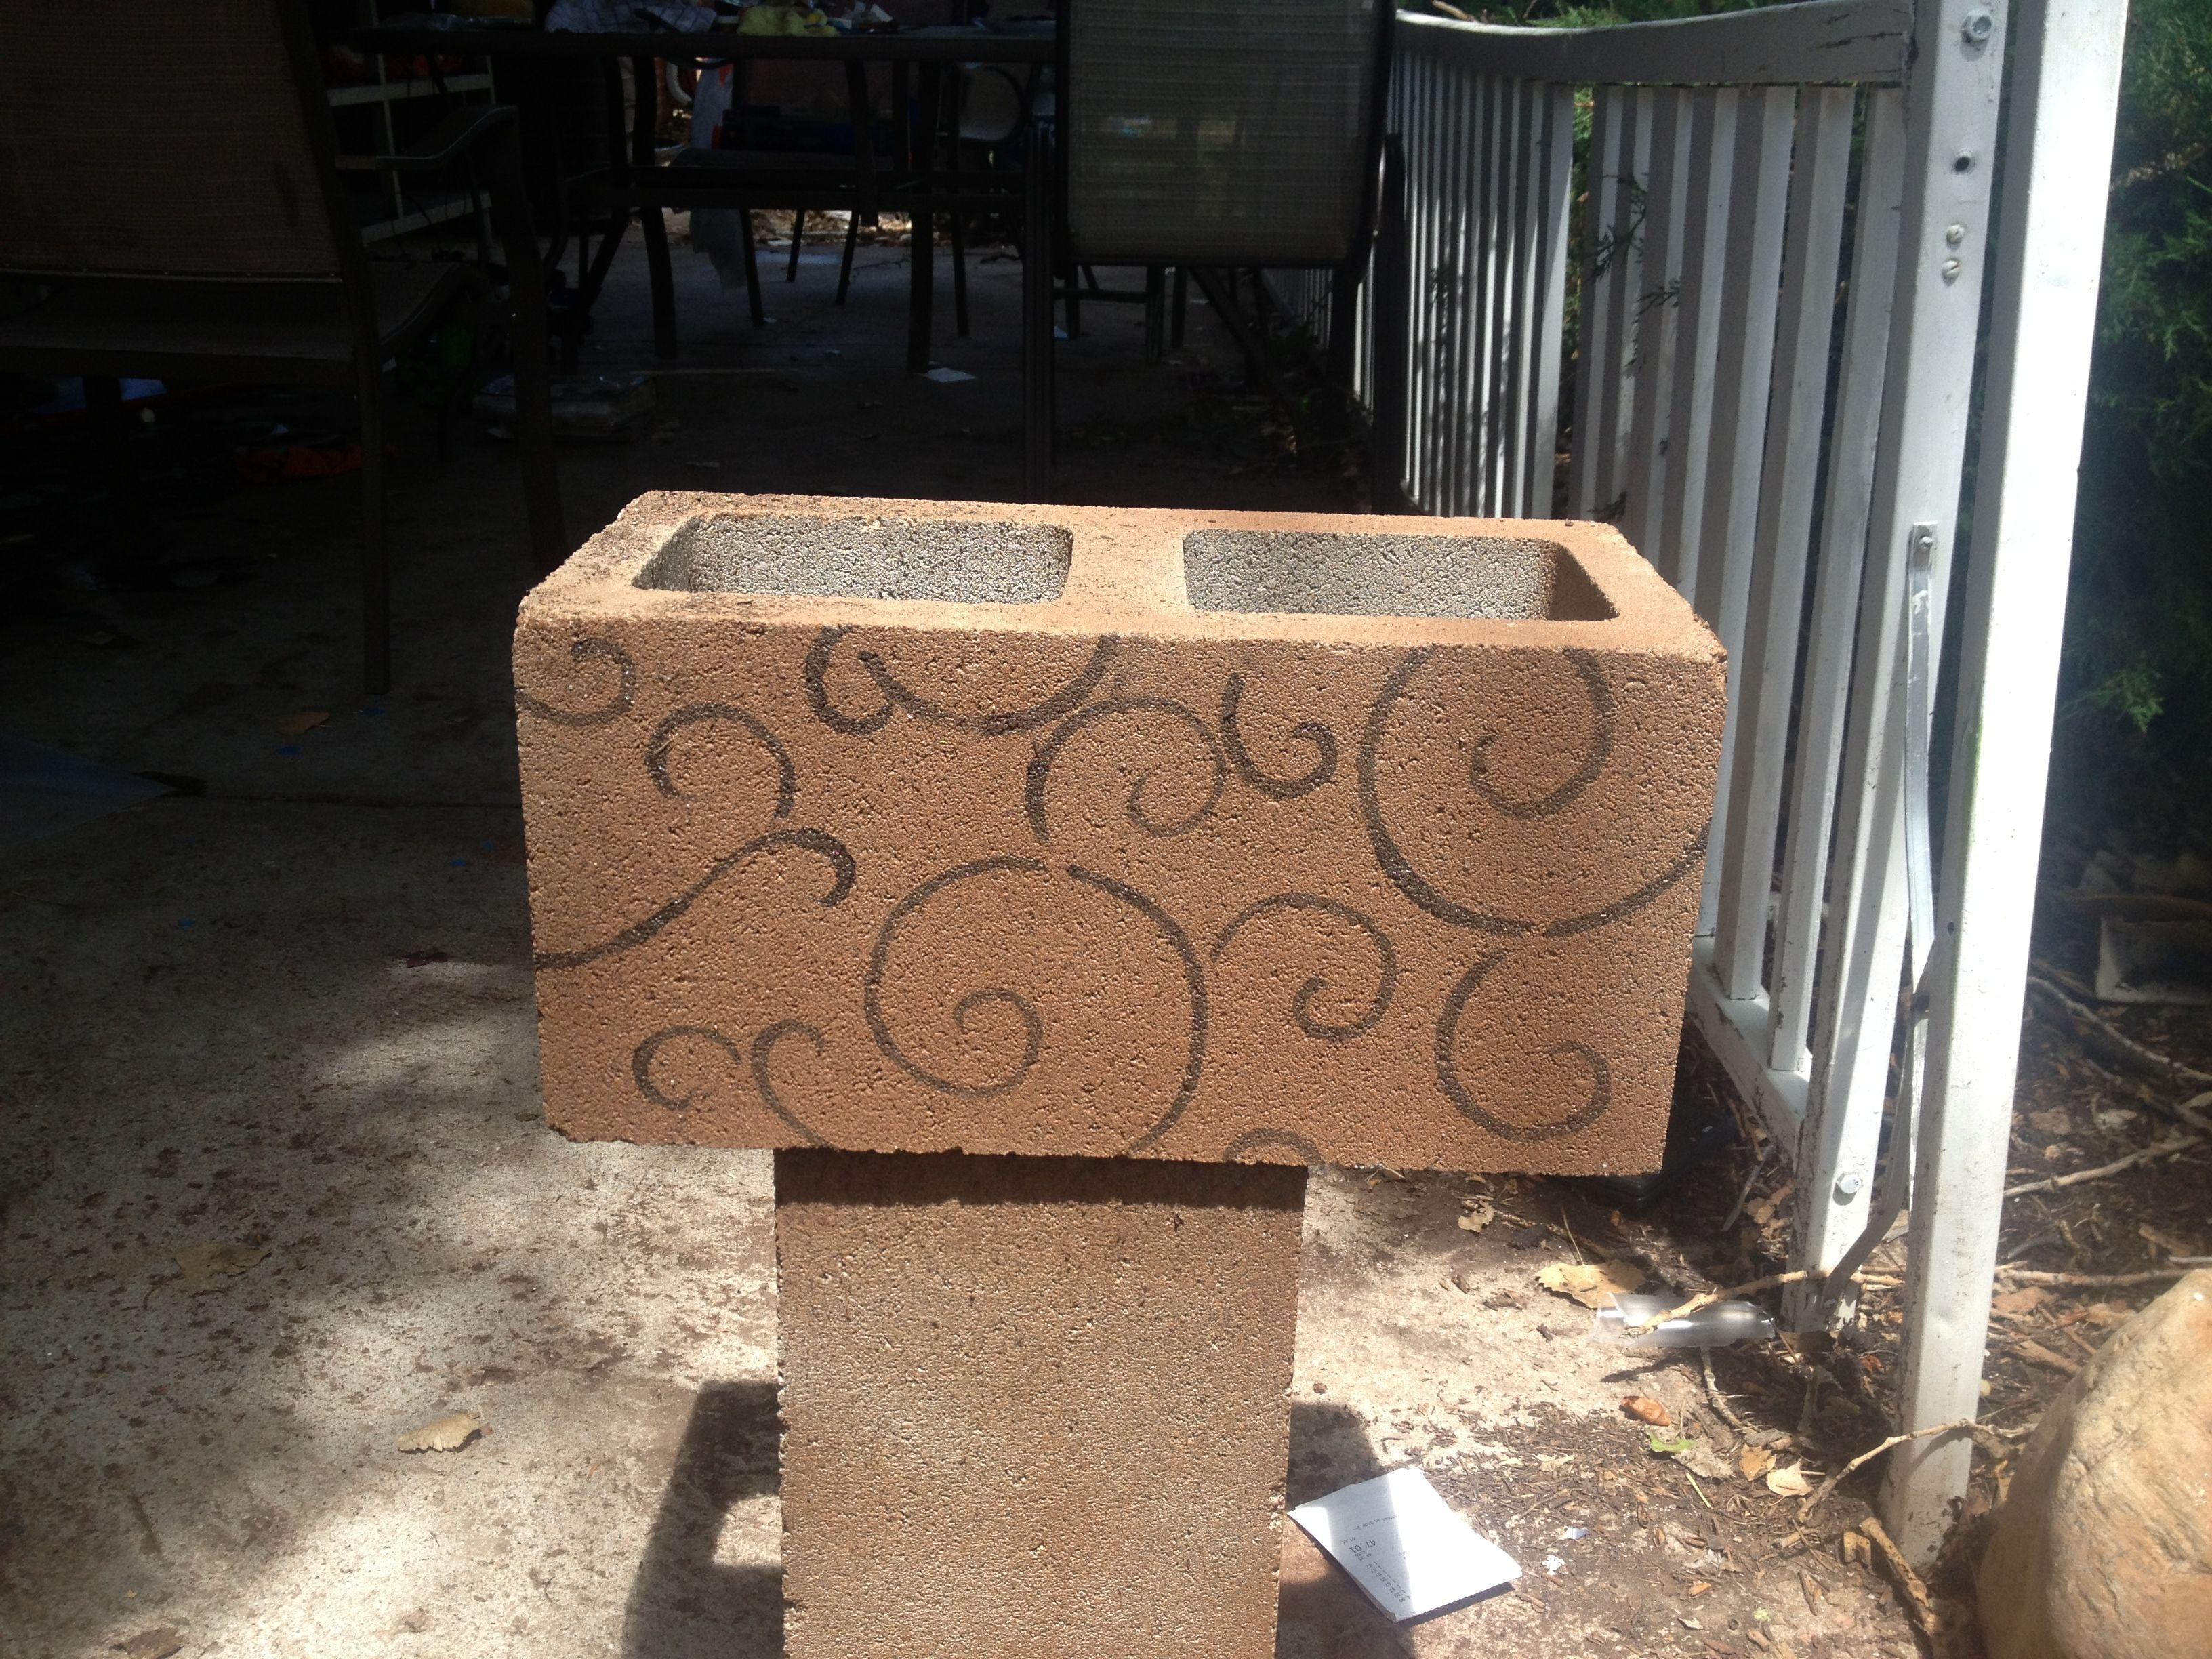 Got The Idea From Pinterest I Added My Own Idea Spray Paint Stencil Use Them For Flower Boxes Instead Of Cinder Block Garden Flower Boxes Concrete Crafts